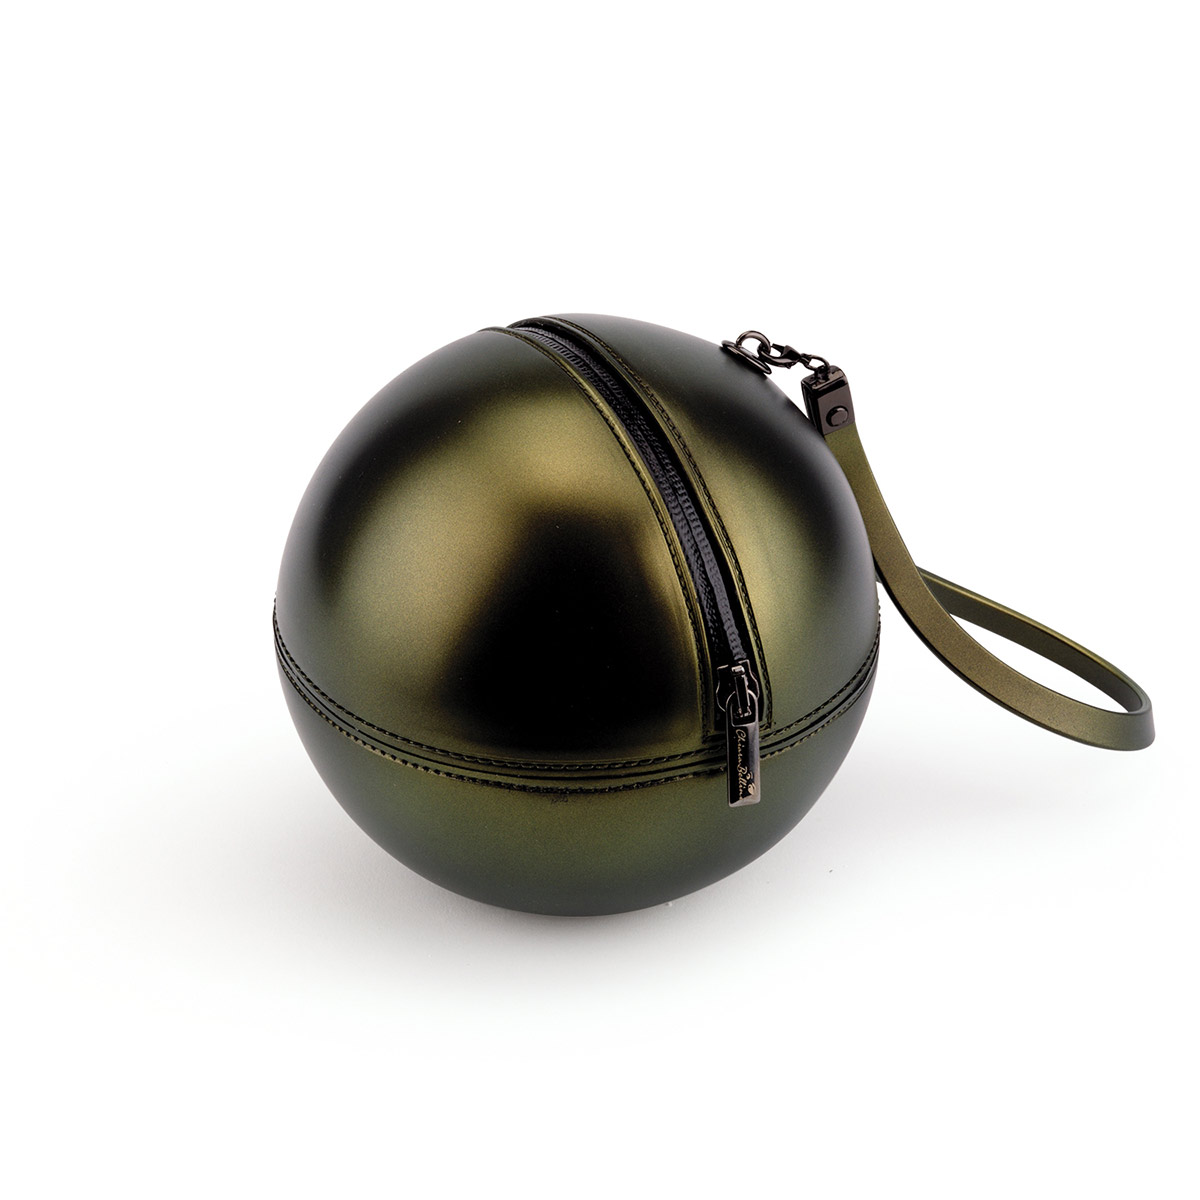 Sphere Bag in Pvc with iridescent effect